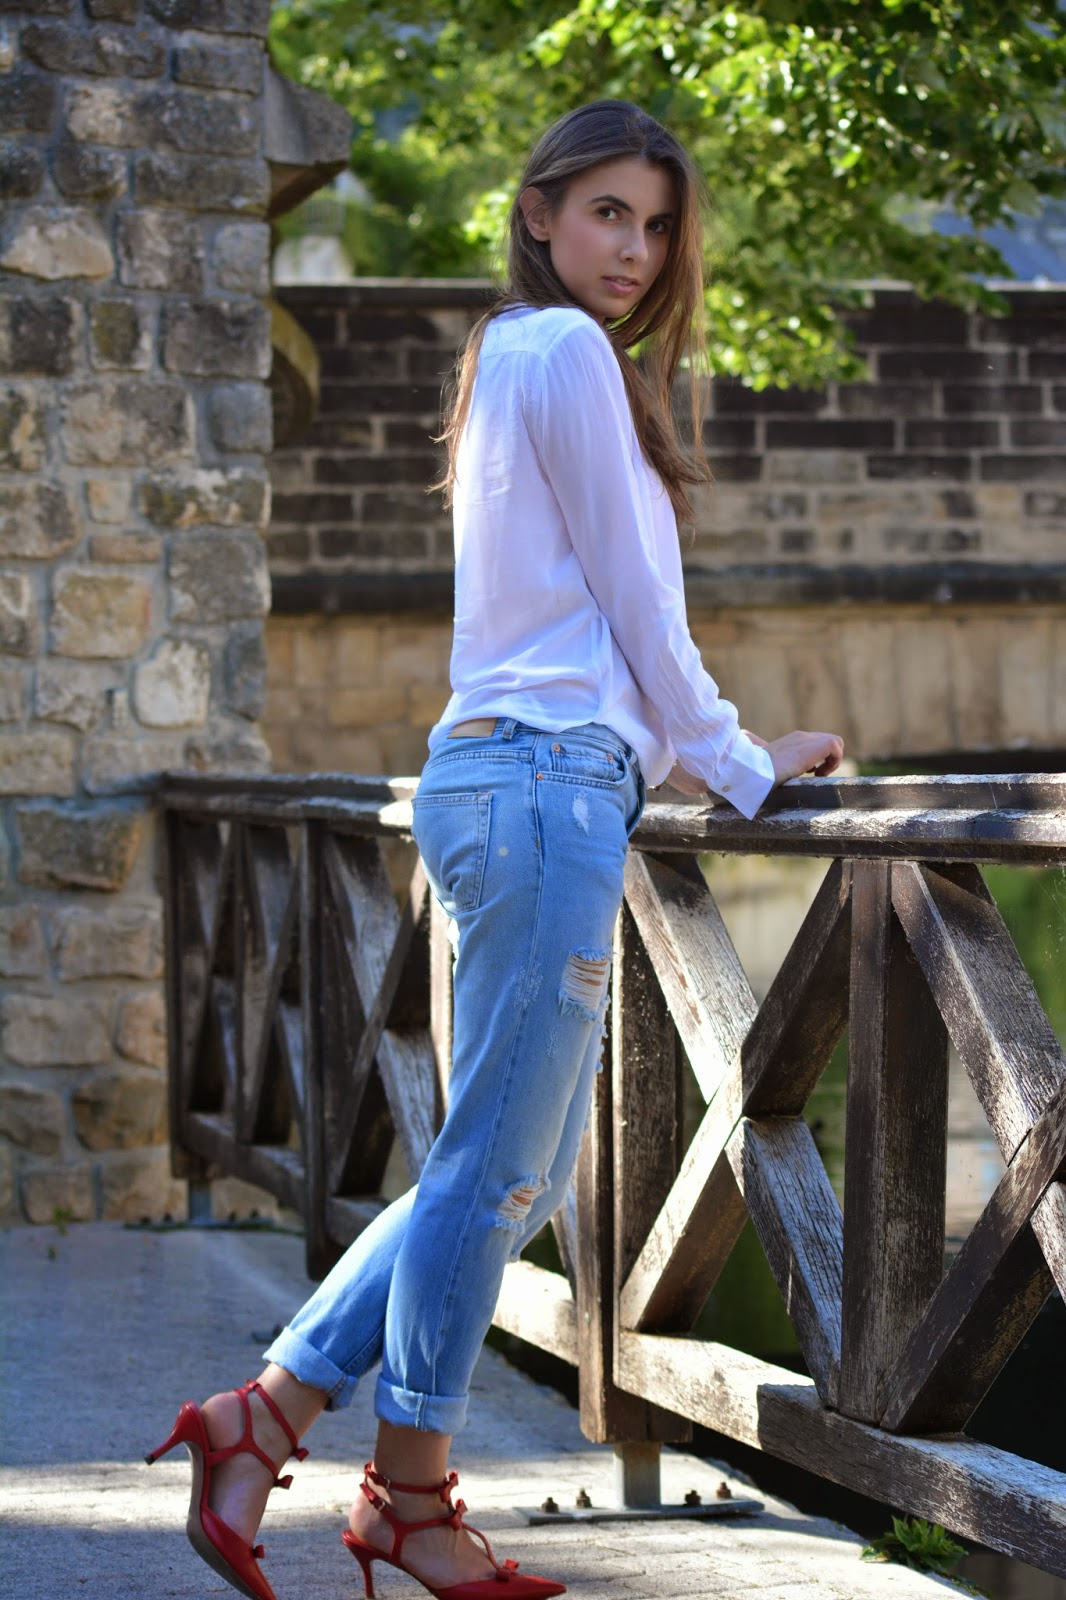 a154a5e36828 Arifashionthread - Luxembourg Fashion and Lifestyle Blog  July 2014